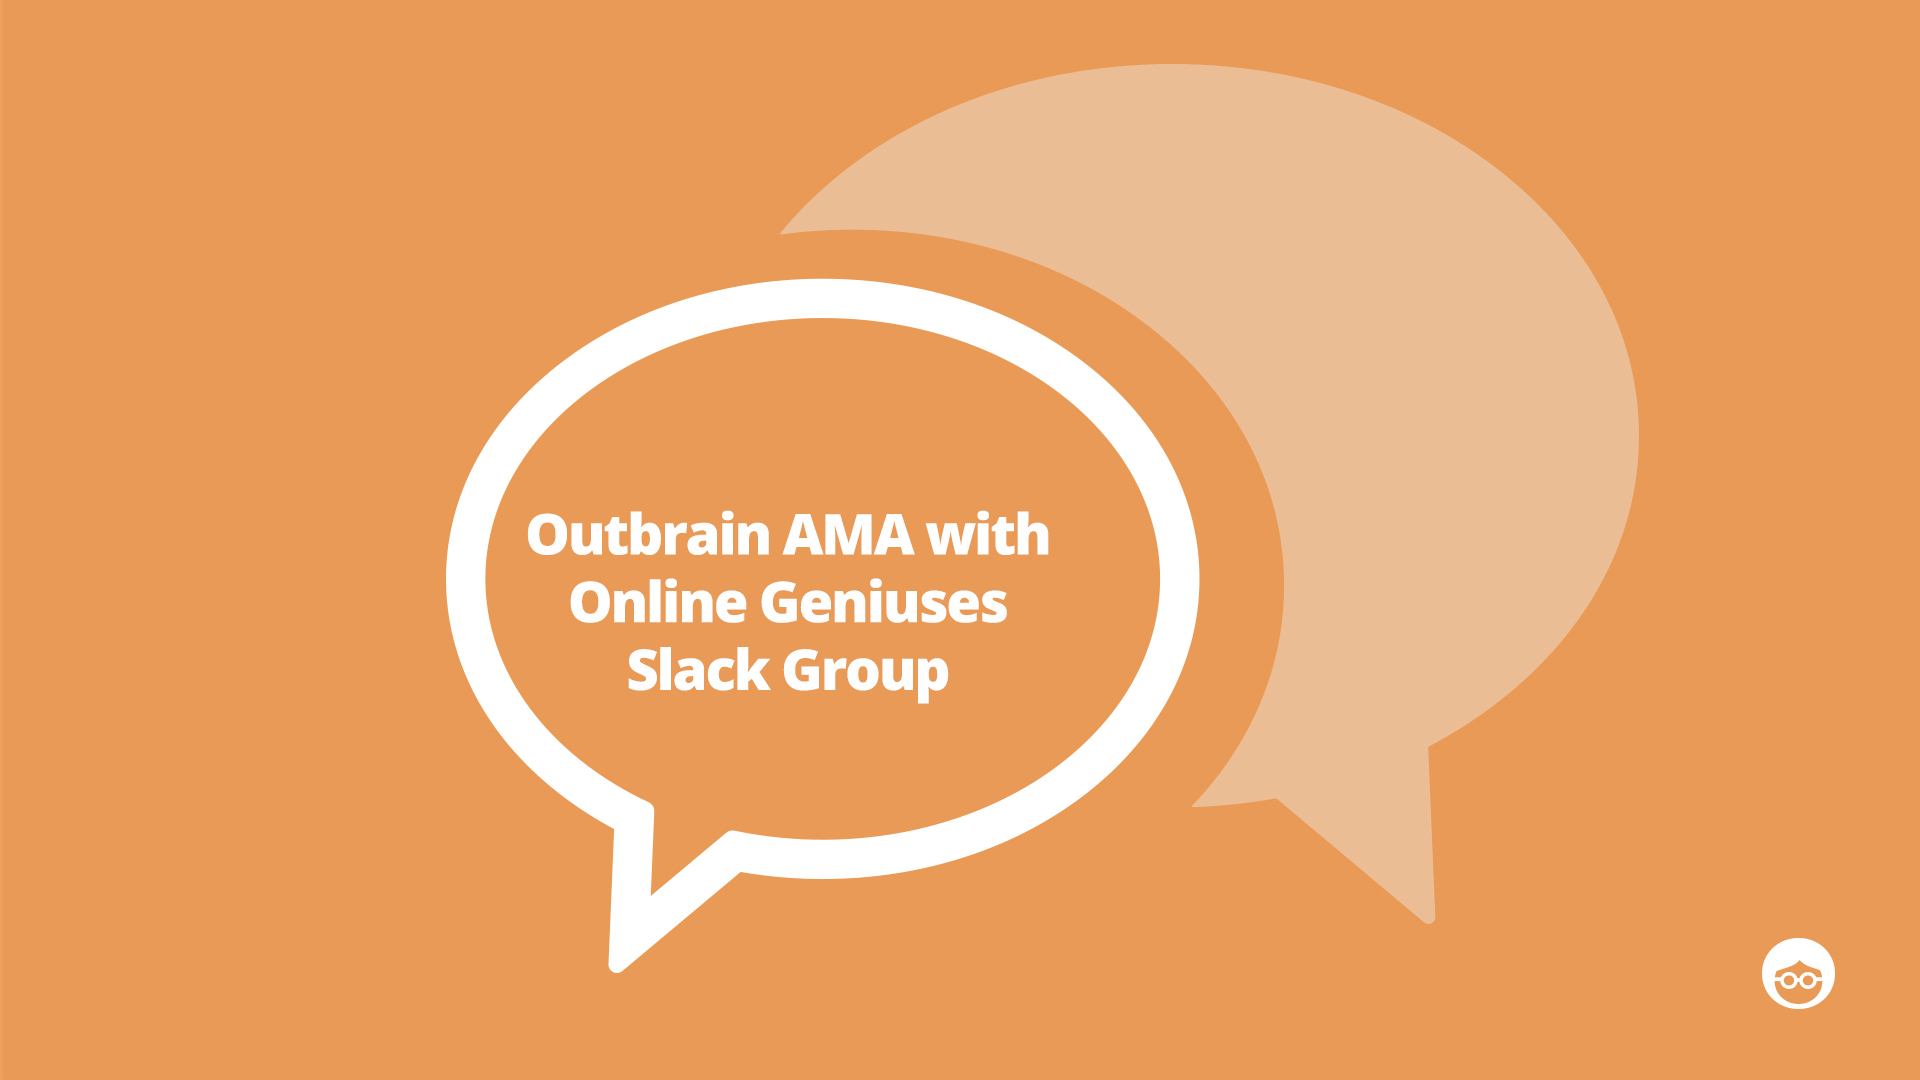 AMA OG slack Group